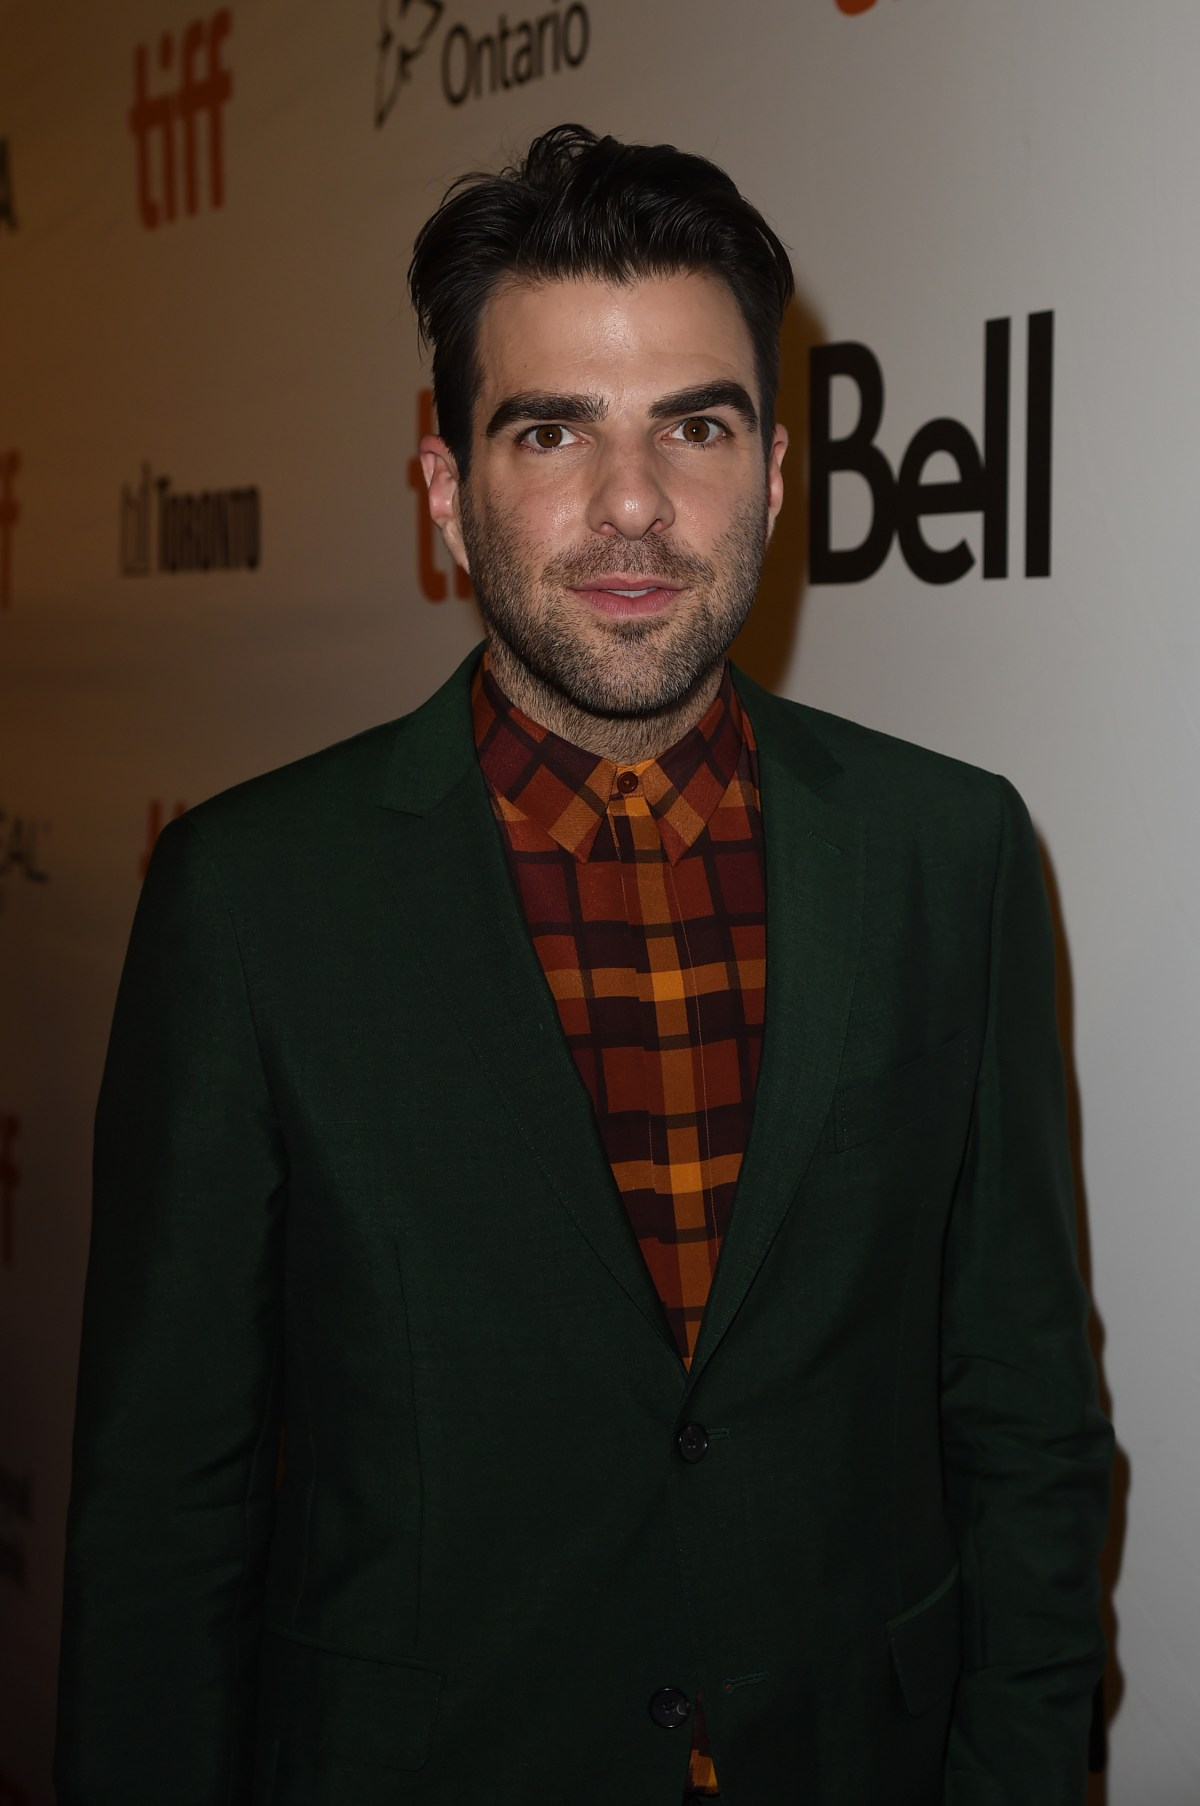 """TORONTO, ON - SEPTEMBER 09:  Actor Zachary Quinto attends the """"Snowden"""" premiere during the 2016 Toronto International Film Festival at Roy Thomson Hall on September 9, 2016 in Toronto, Canada.  (Photo by Kevin Winter/Getty Images)"""